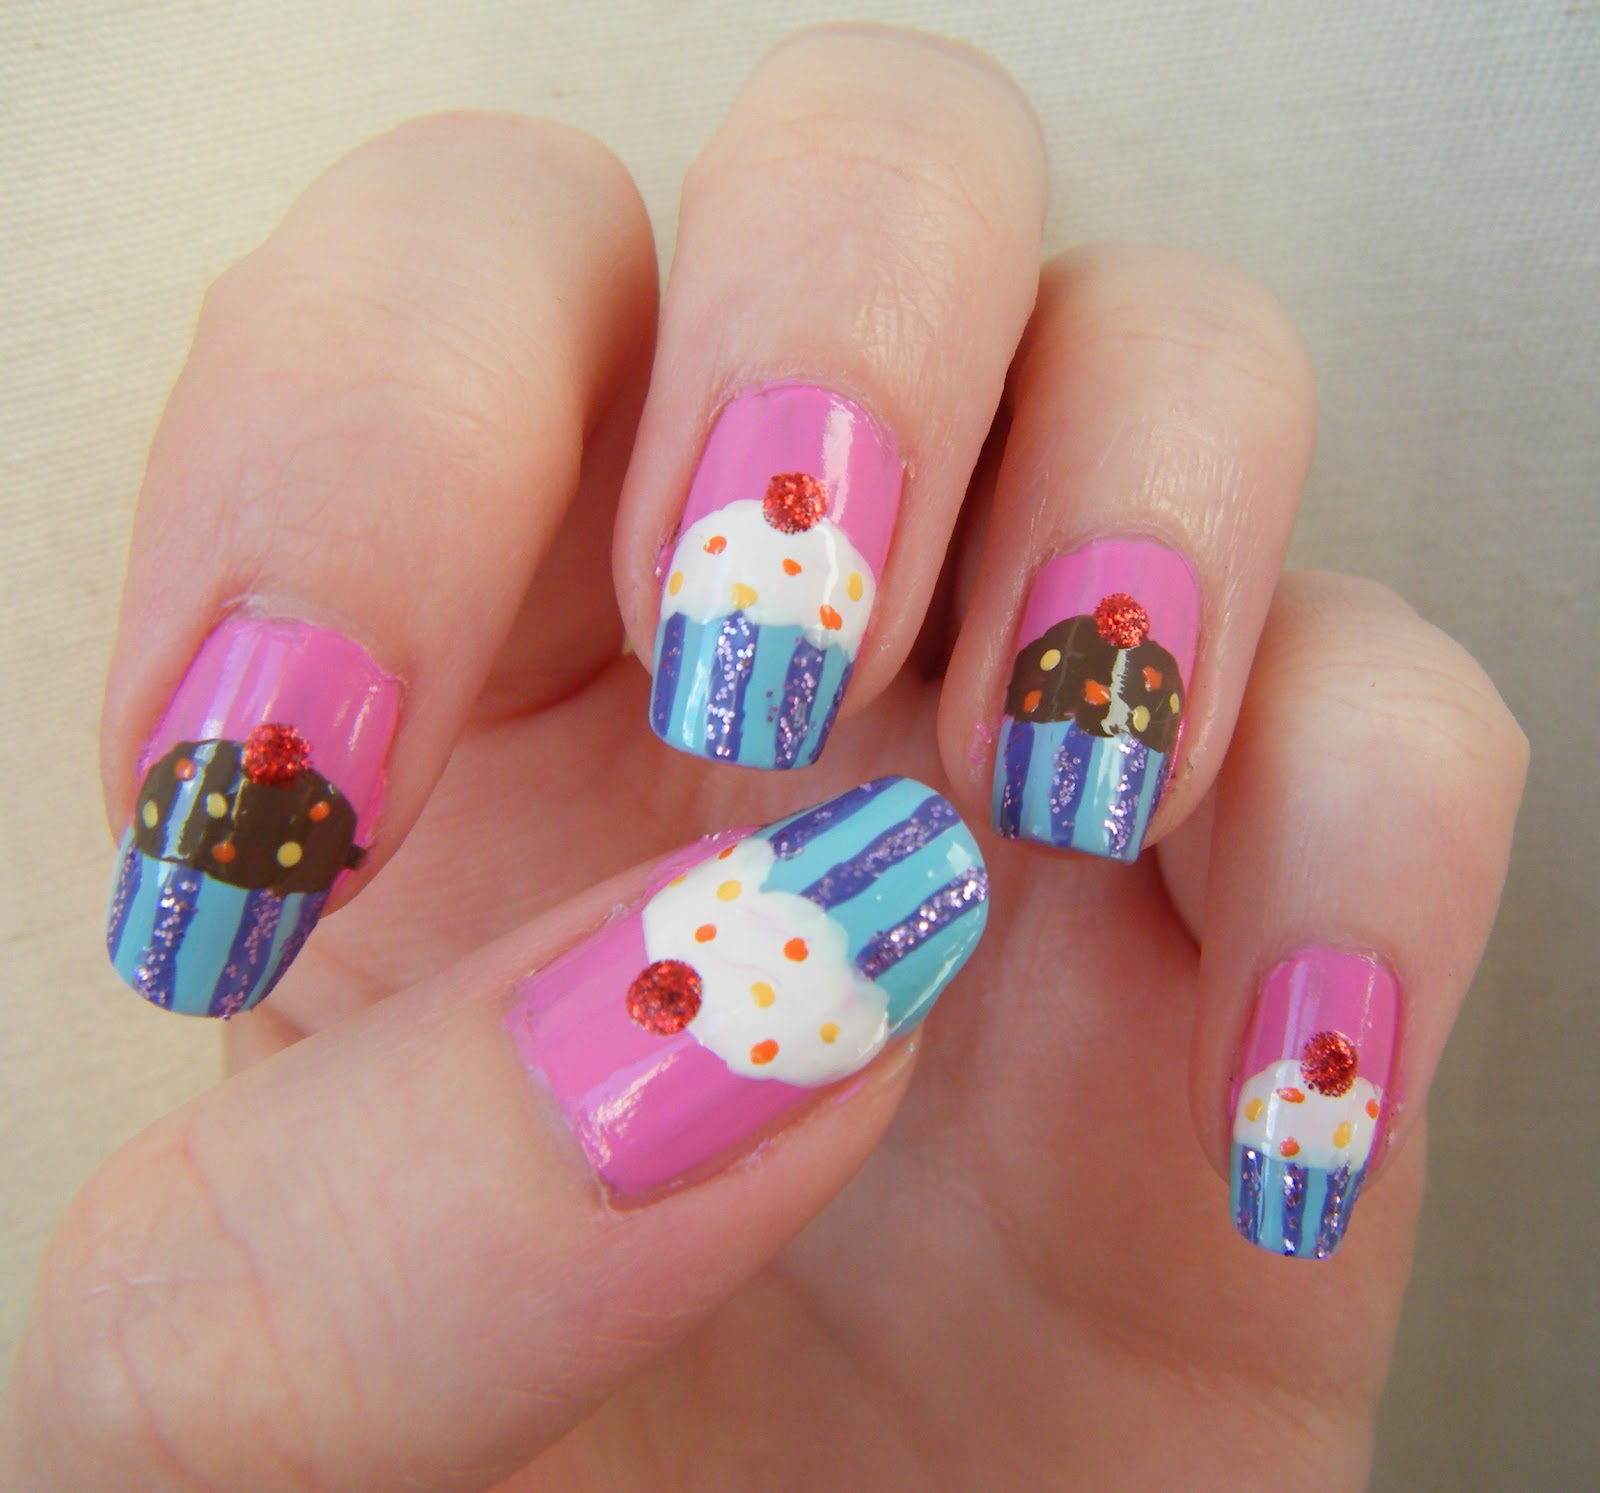 30 Awesome Cupcake Nail Art Designs 2015/16 30 Awesome Cupcake Nail Art Designs 2015/16 cupcake nail art design 14